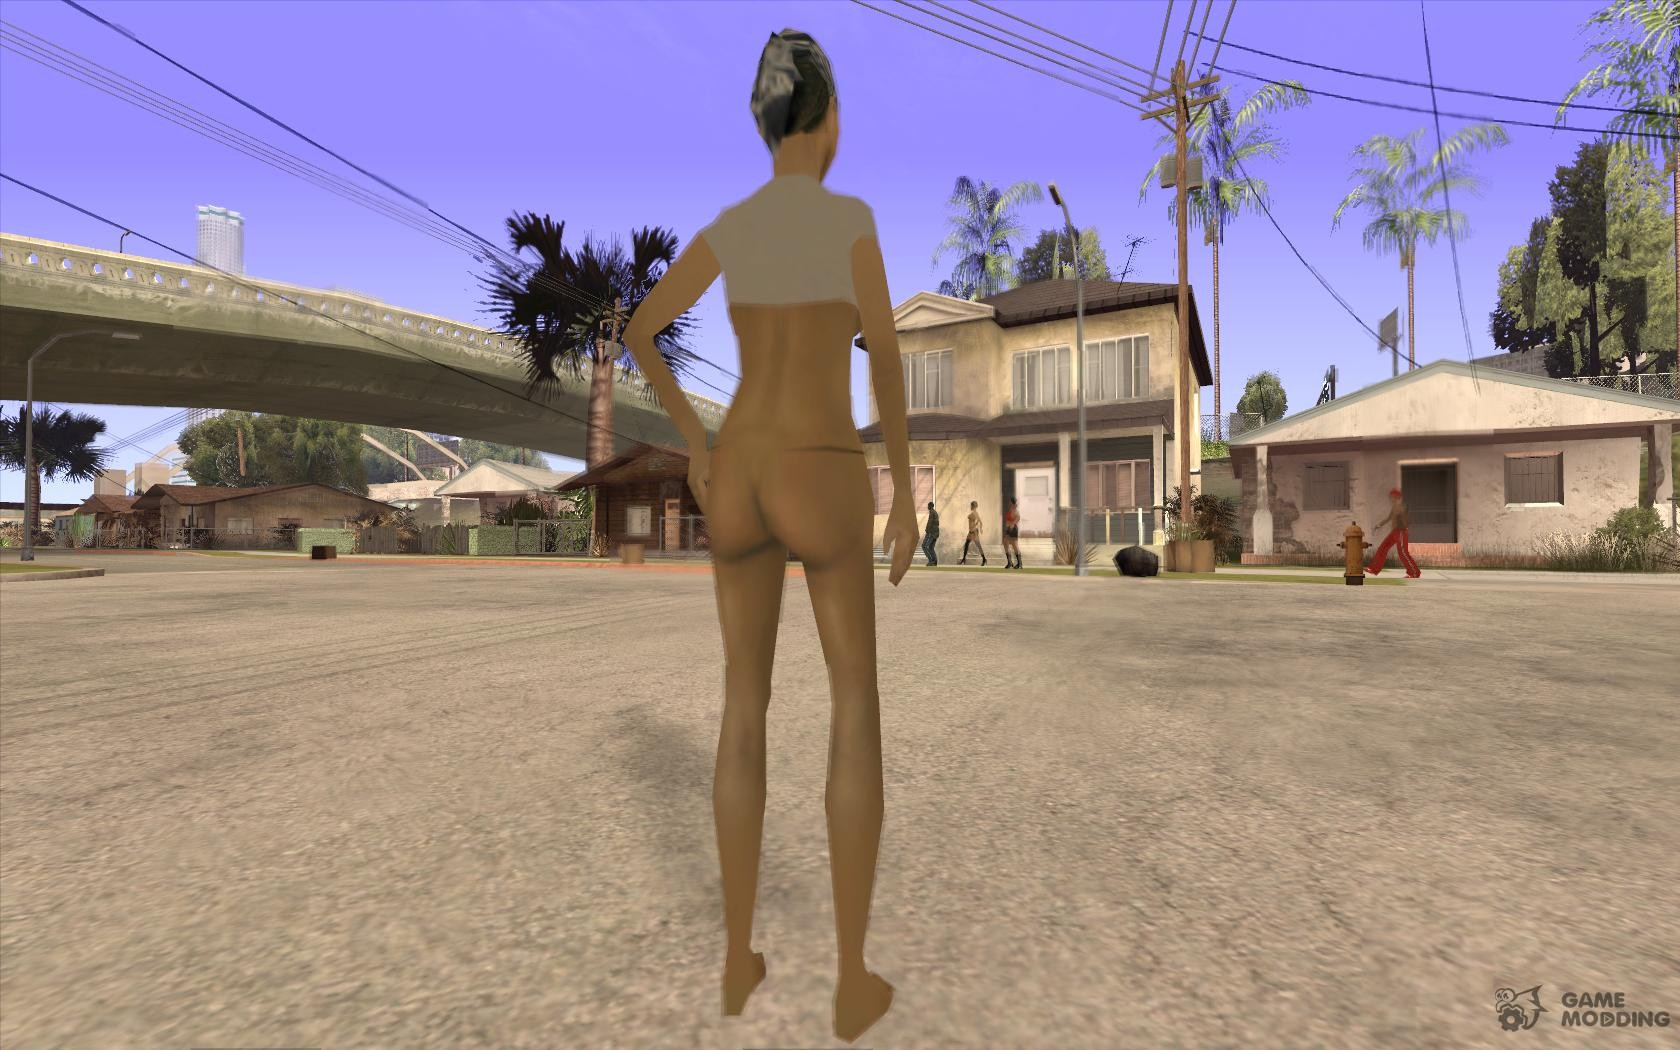 Gta san andreas nude mod to download naked scene